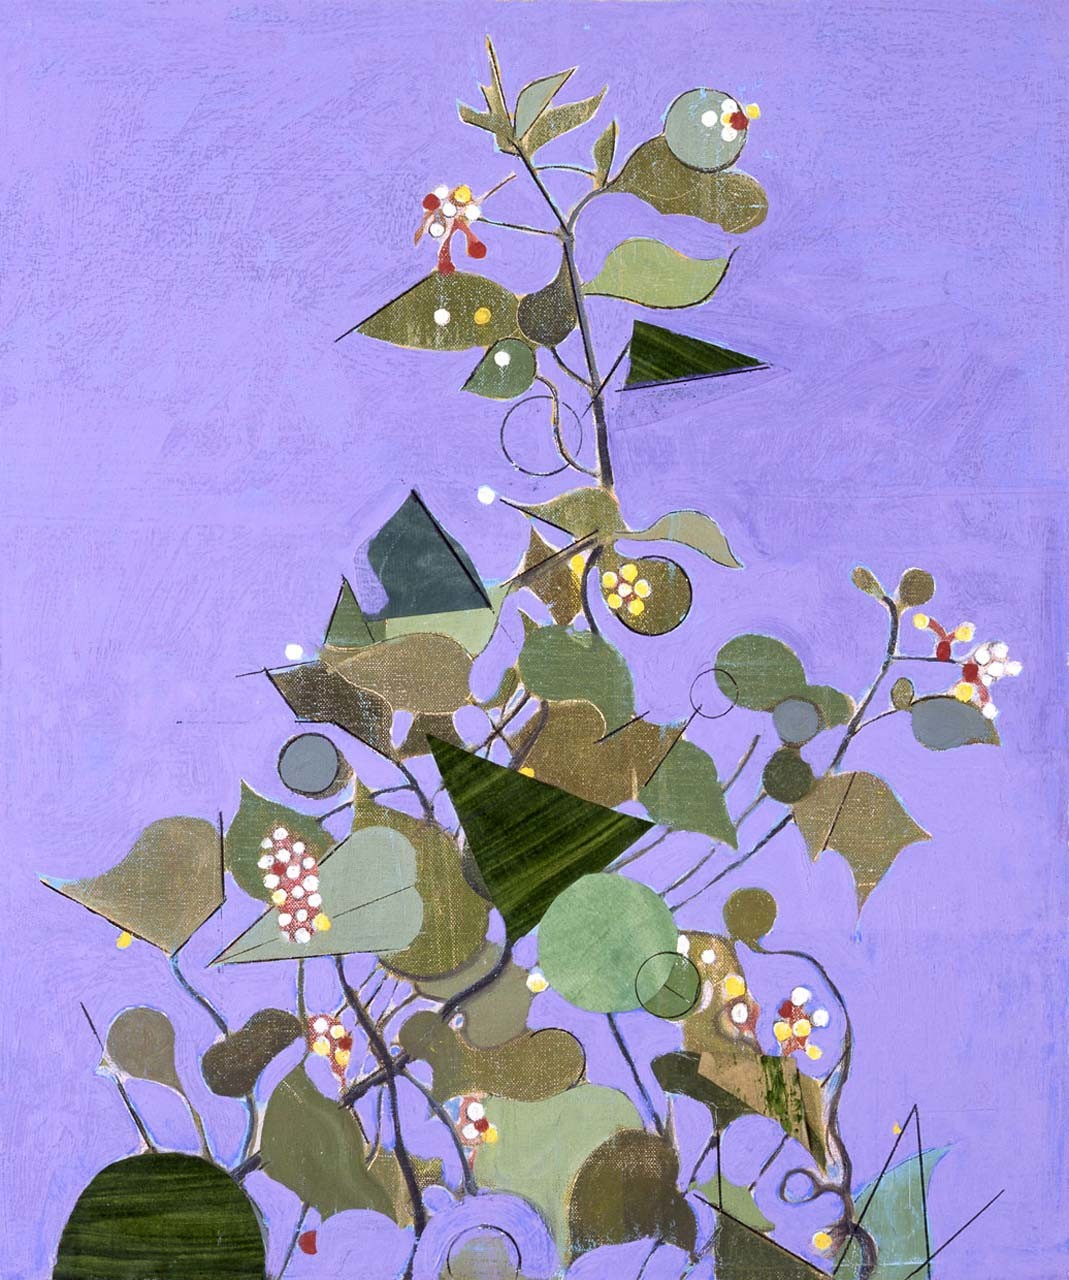 "<div class=""artwork_caption""><p>Flowers with Purple Background, 2010</p></div>"